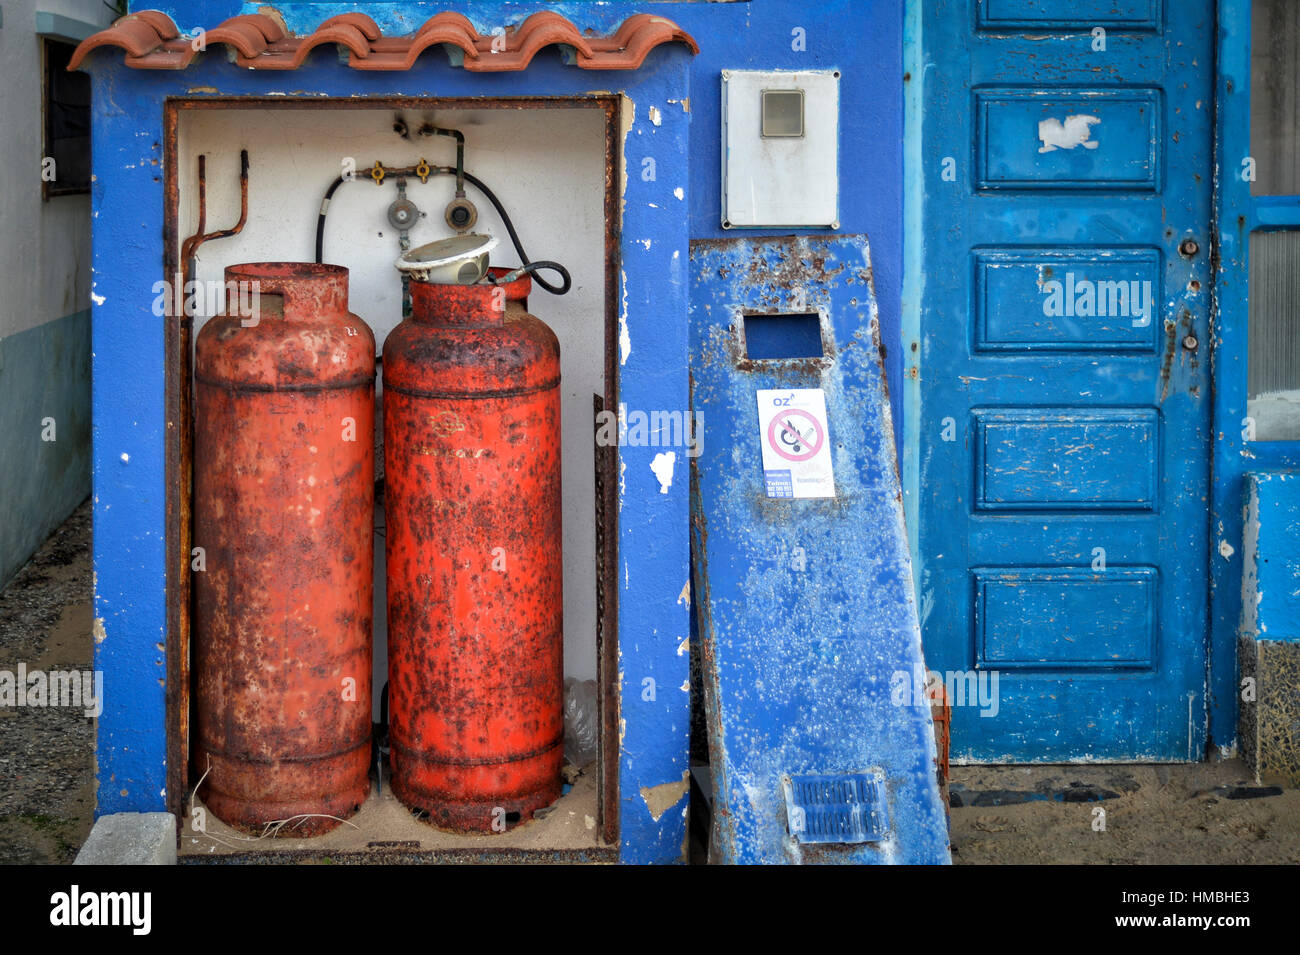 rusty gas fuel canisters outside a building - Stock Image